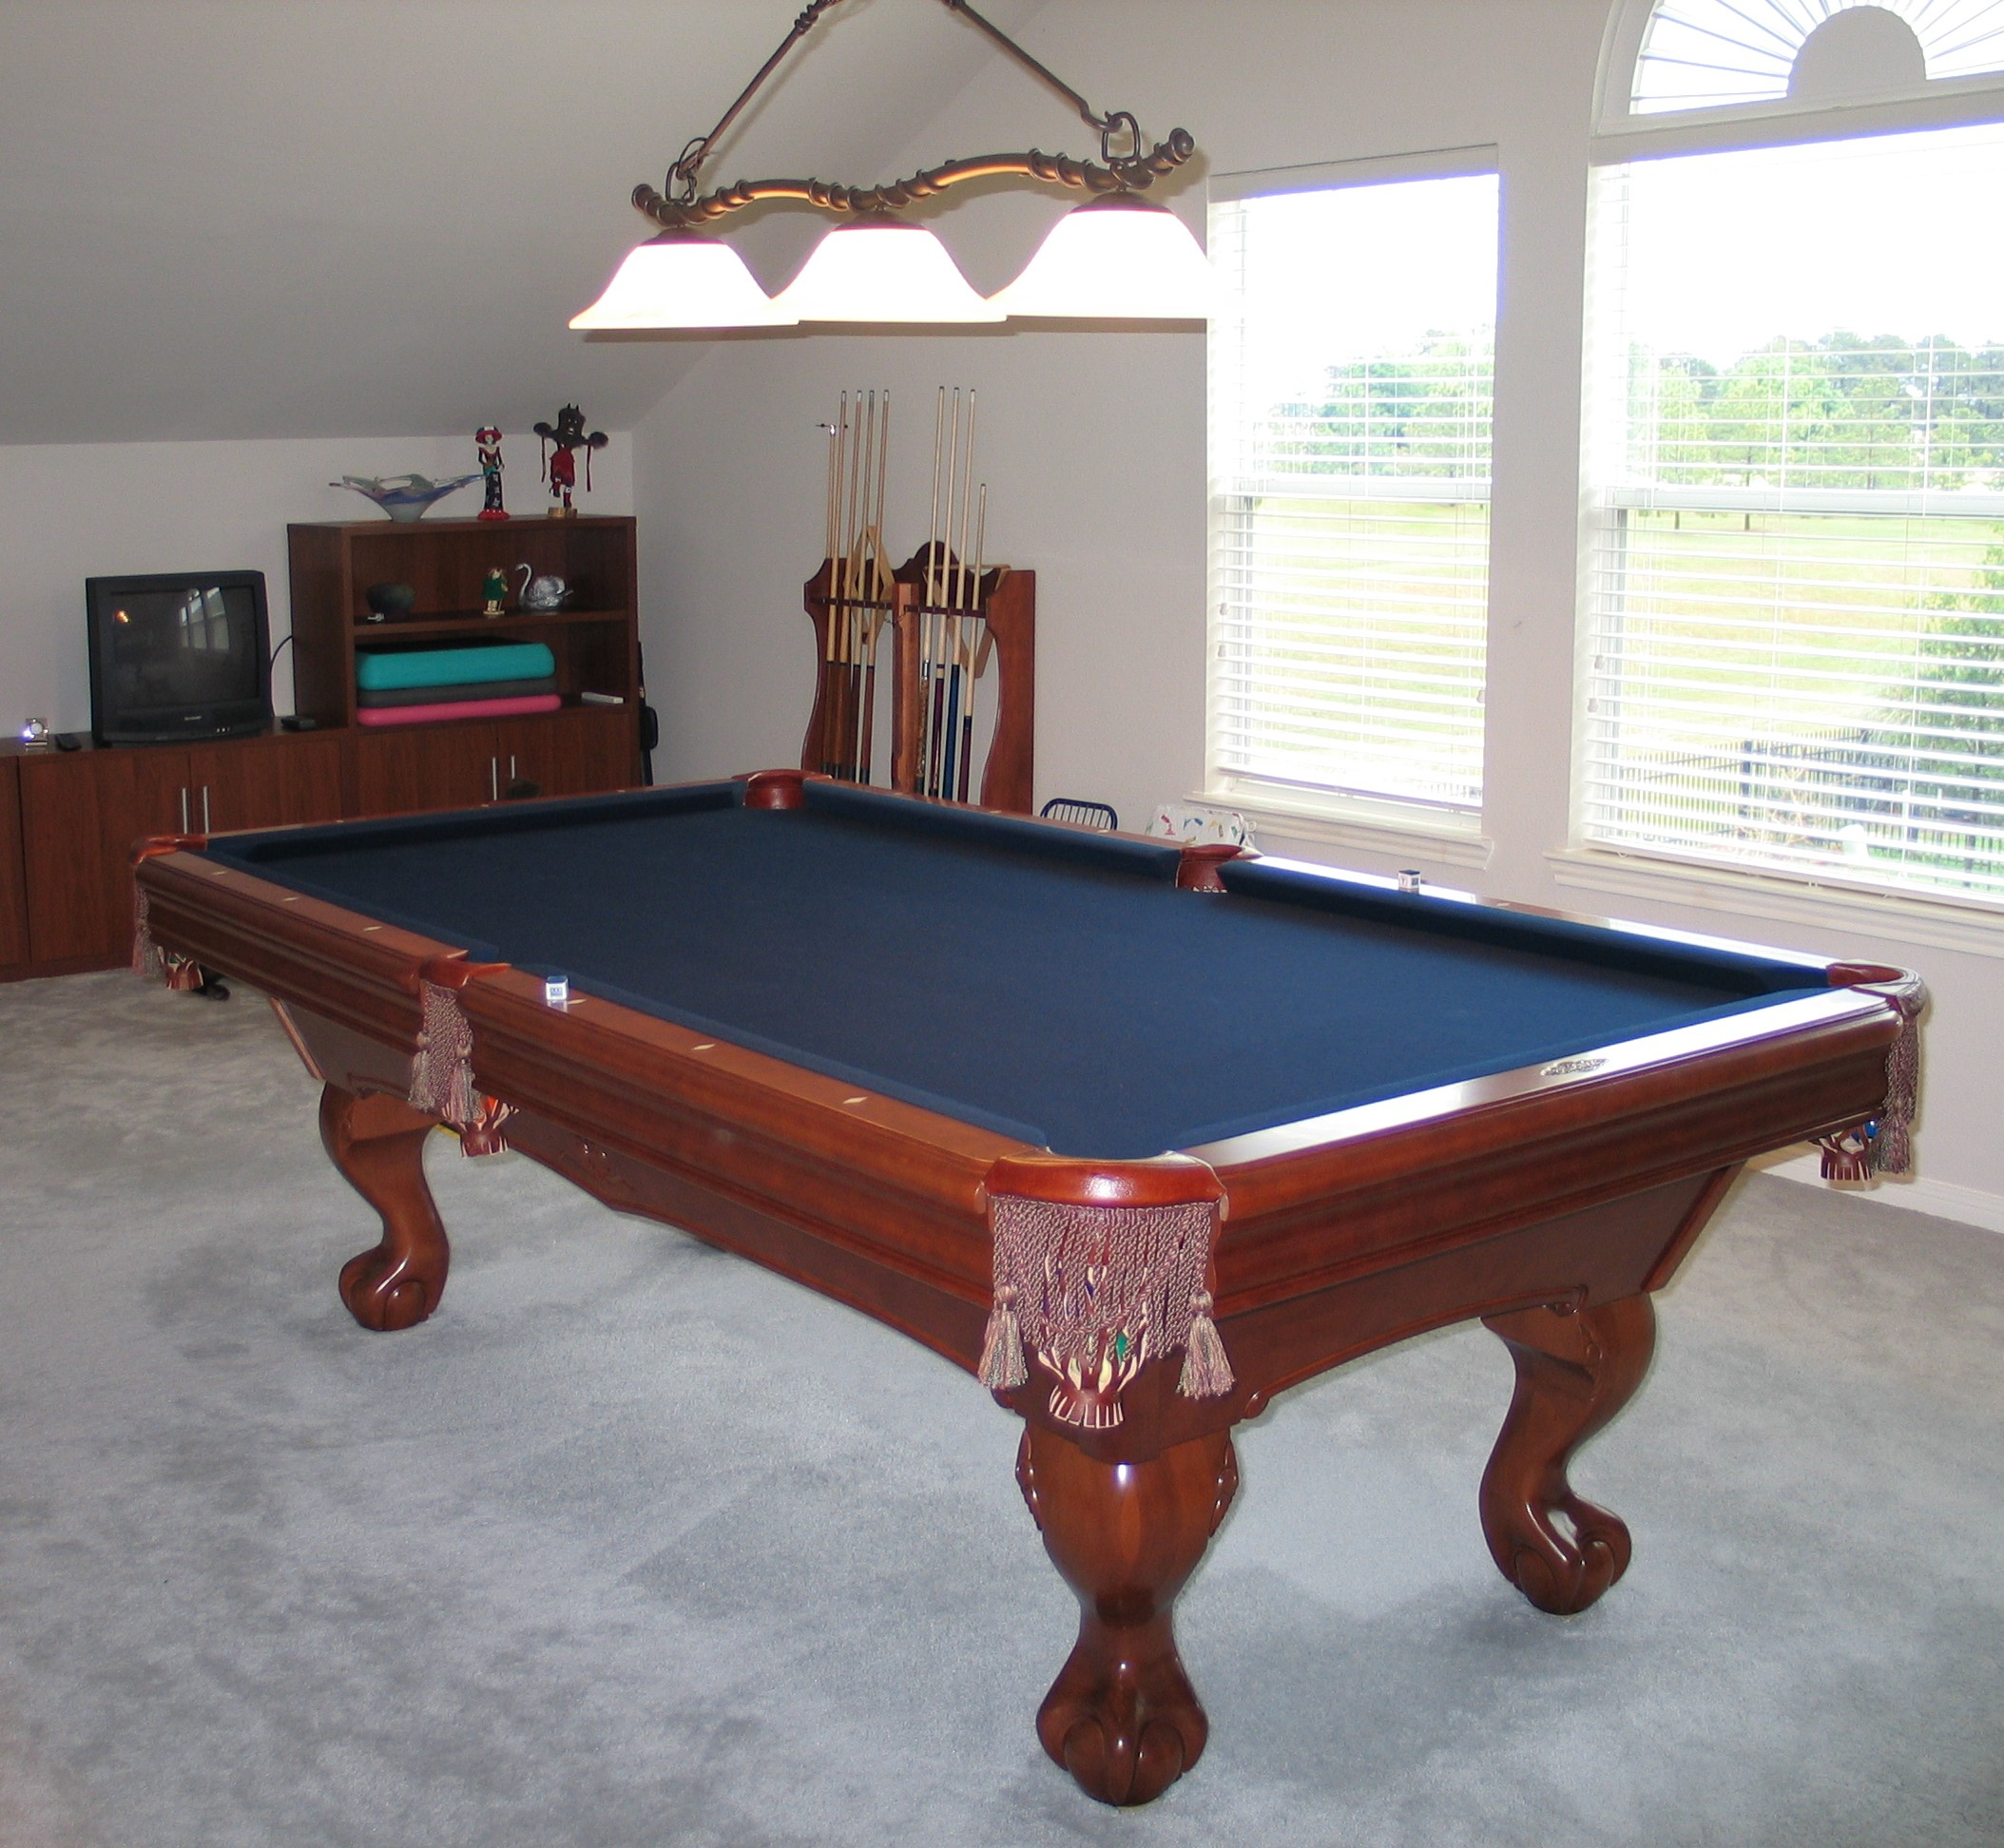 Mlogiudicecom Billiard Pool Page - Buy my pool table